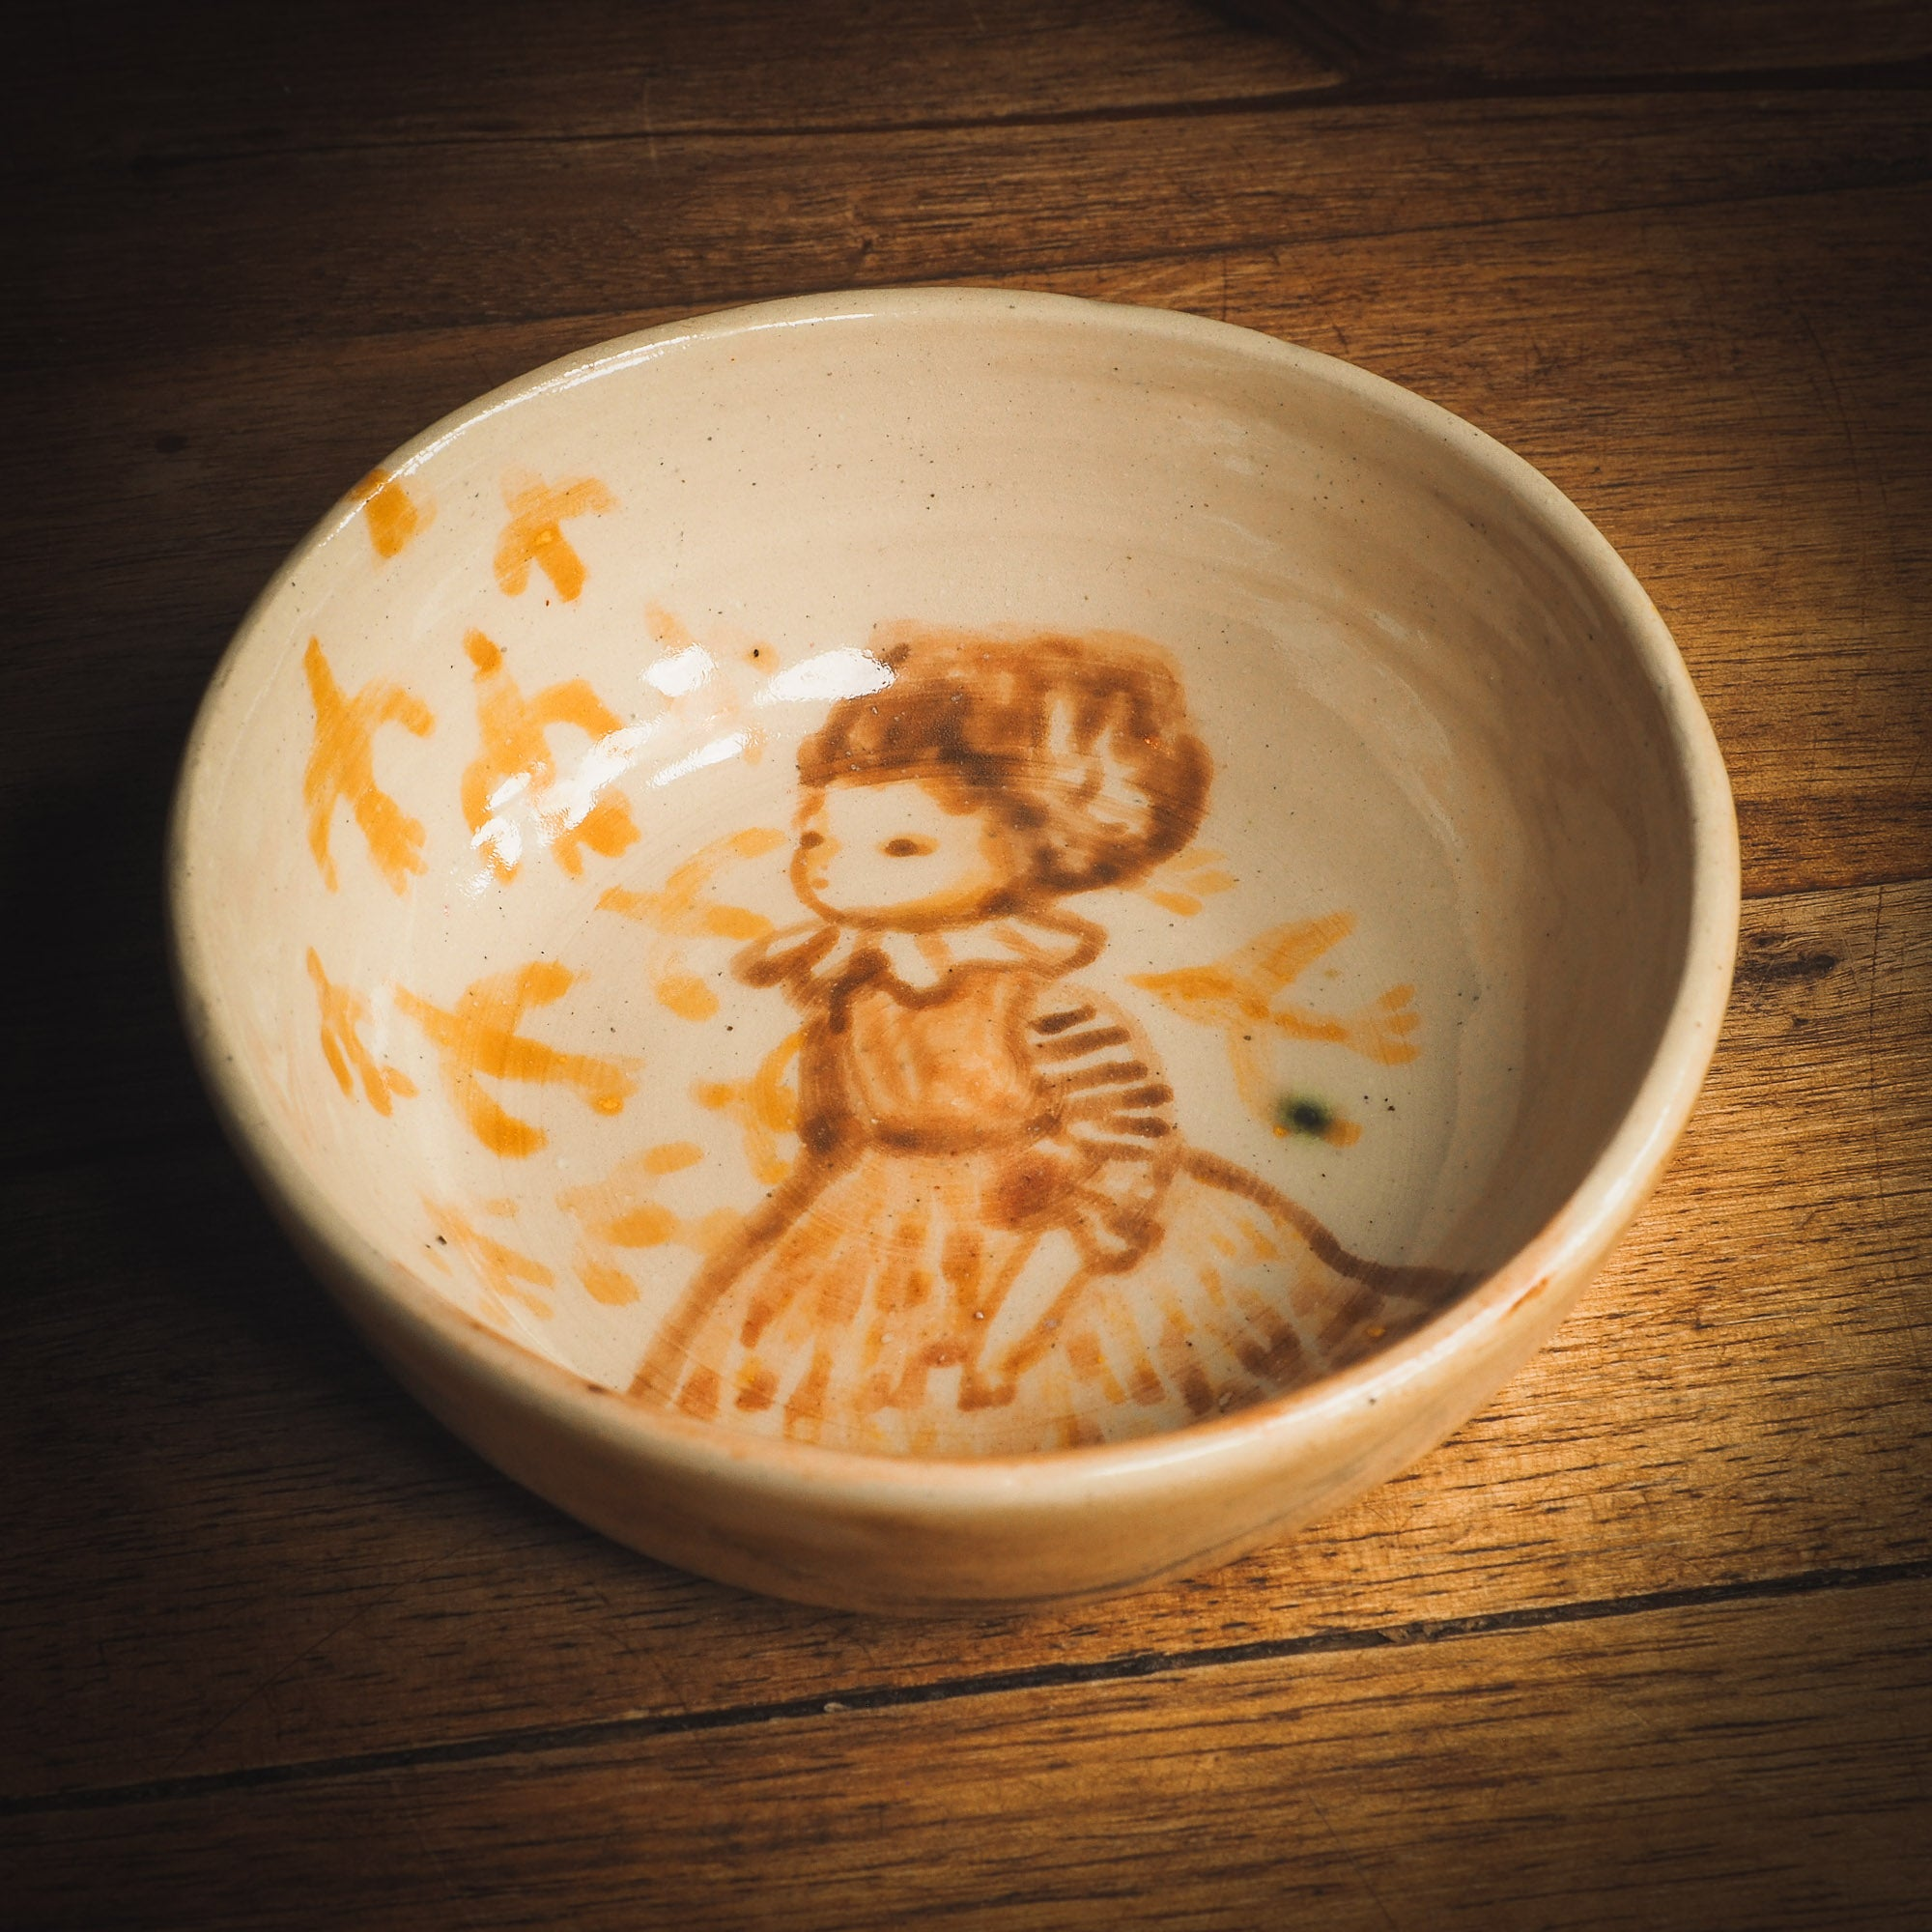 An original Idania Salcido Danita Art ceramic cat pet food plate. Handmade from stoneware, this glazed ceramics one of a kind artwork is perfect for any kitchen plate and bowls unique collection. Thumbprints and  intentionally irregular shape give the bowl a cozy, warmly familiar feel when you pick it. A flock of yellow birds greets a beautiful girl in a striped dress, painted in watercolor style underglaze by Danita Art.